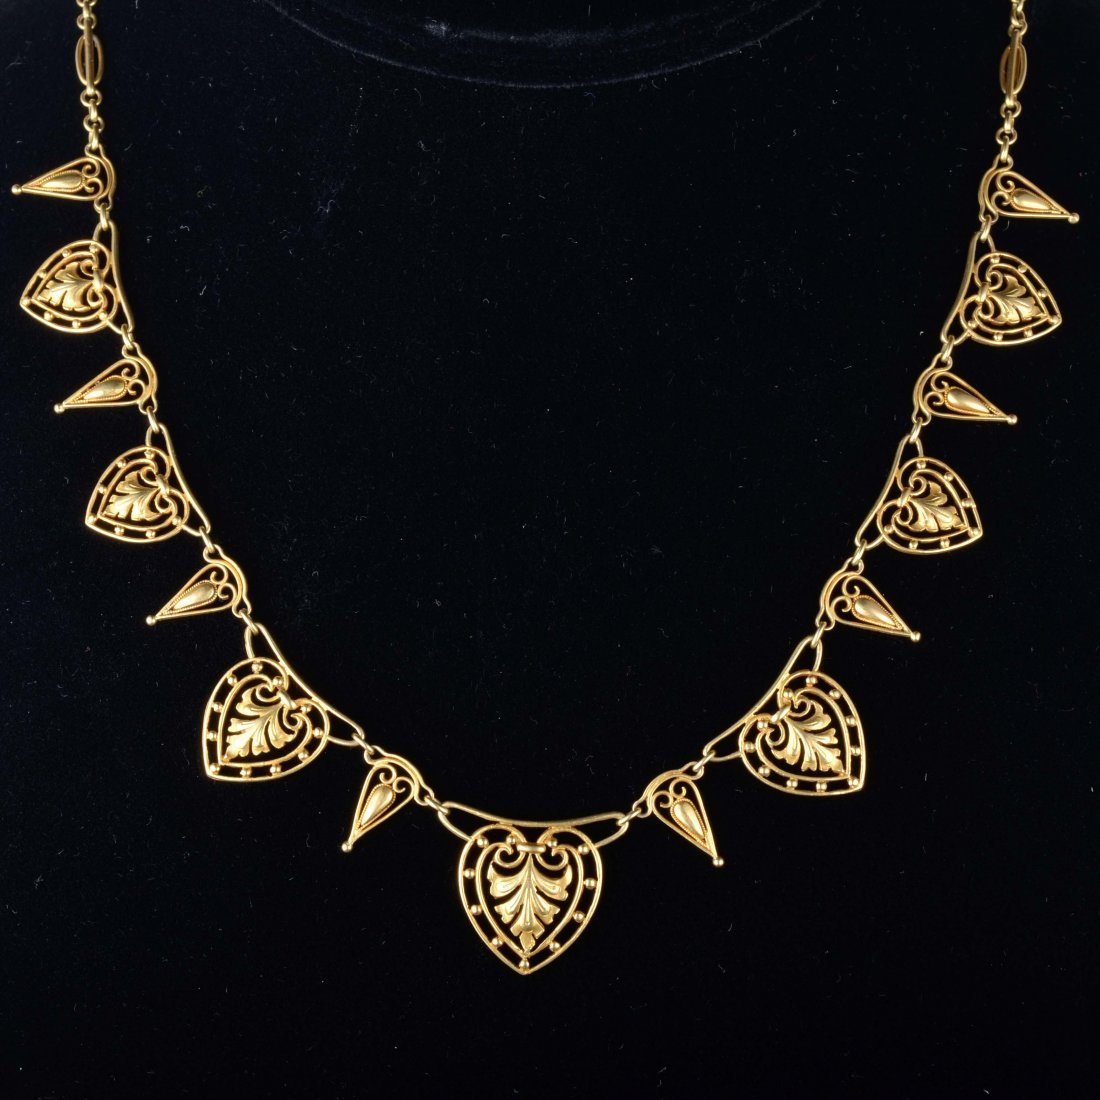 French Art Nouveau yellow gold necklace